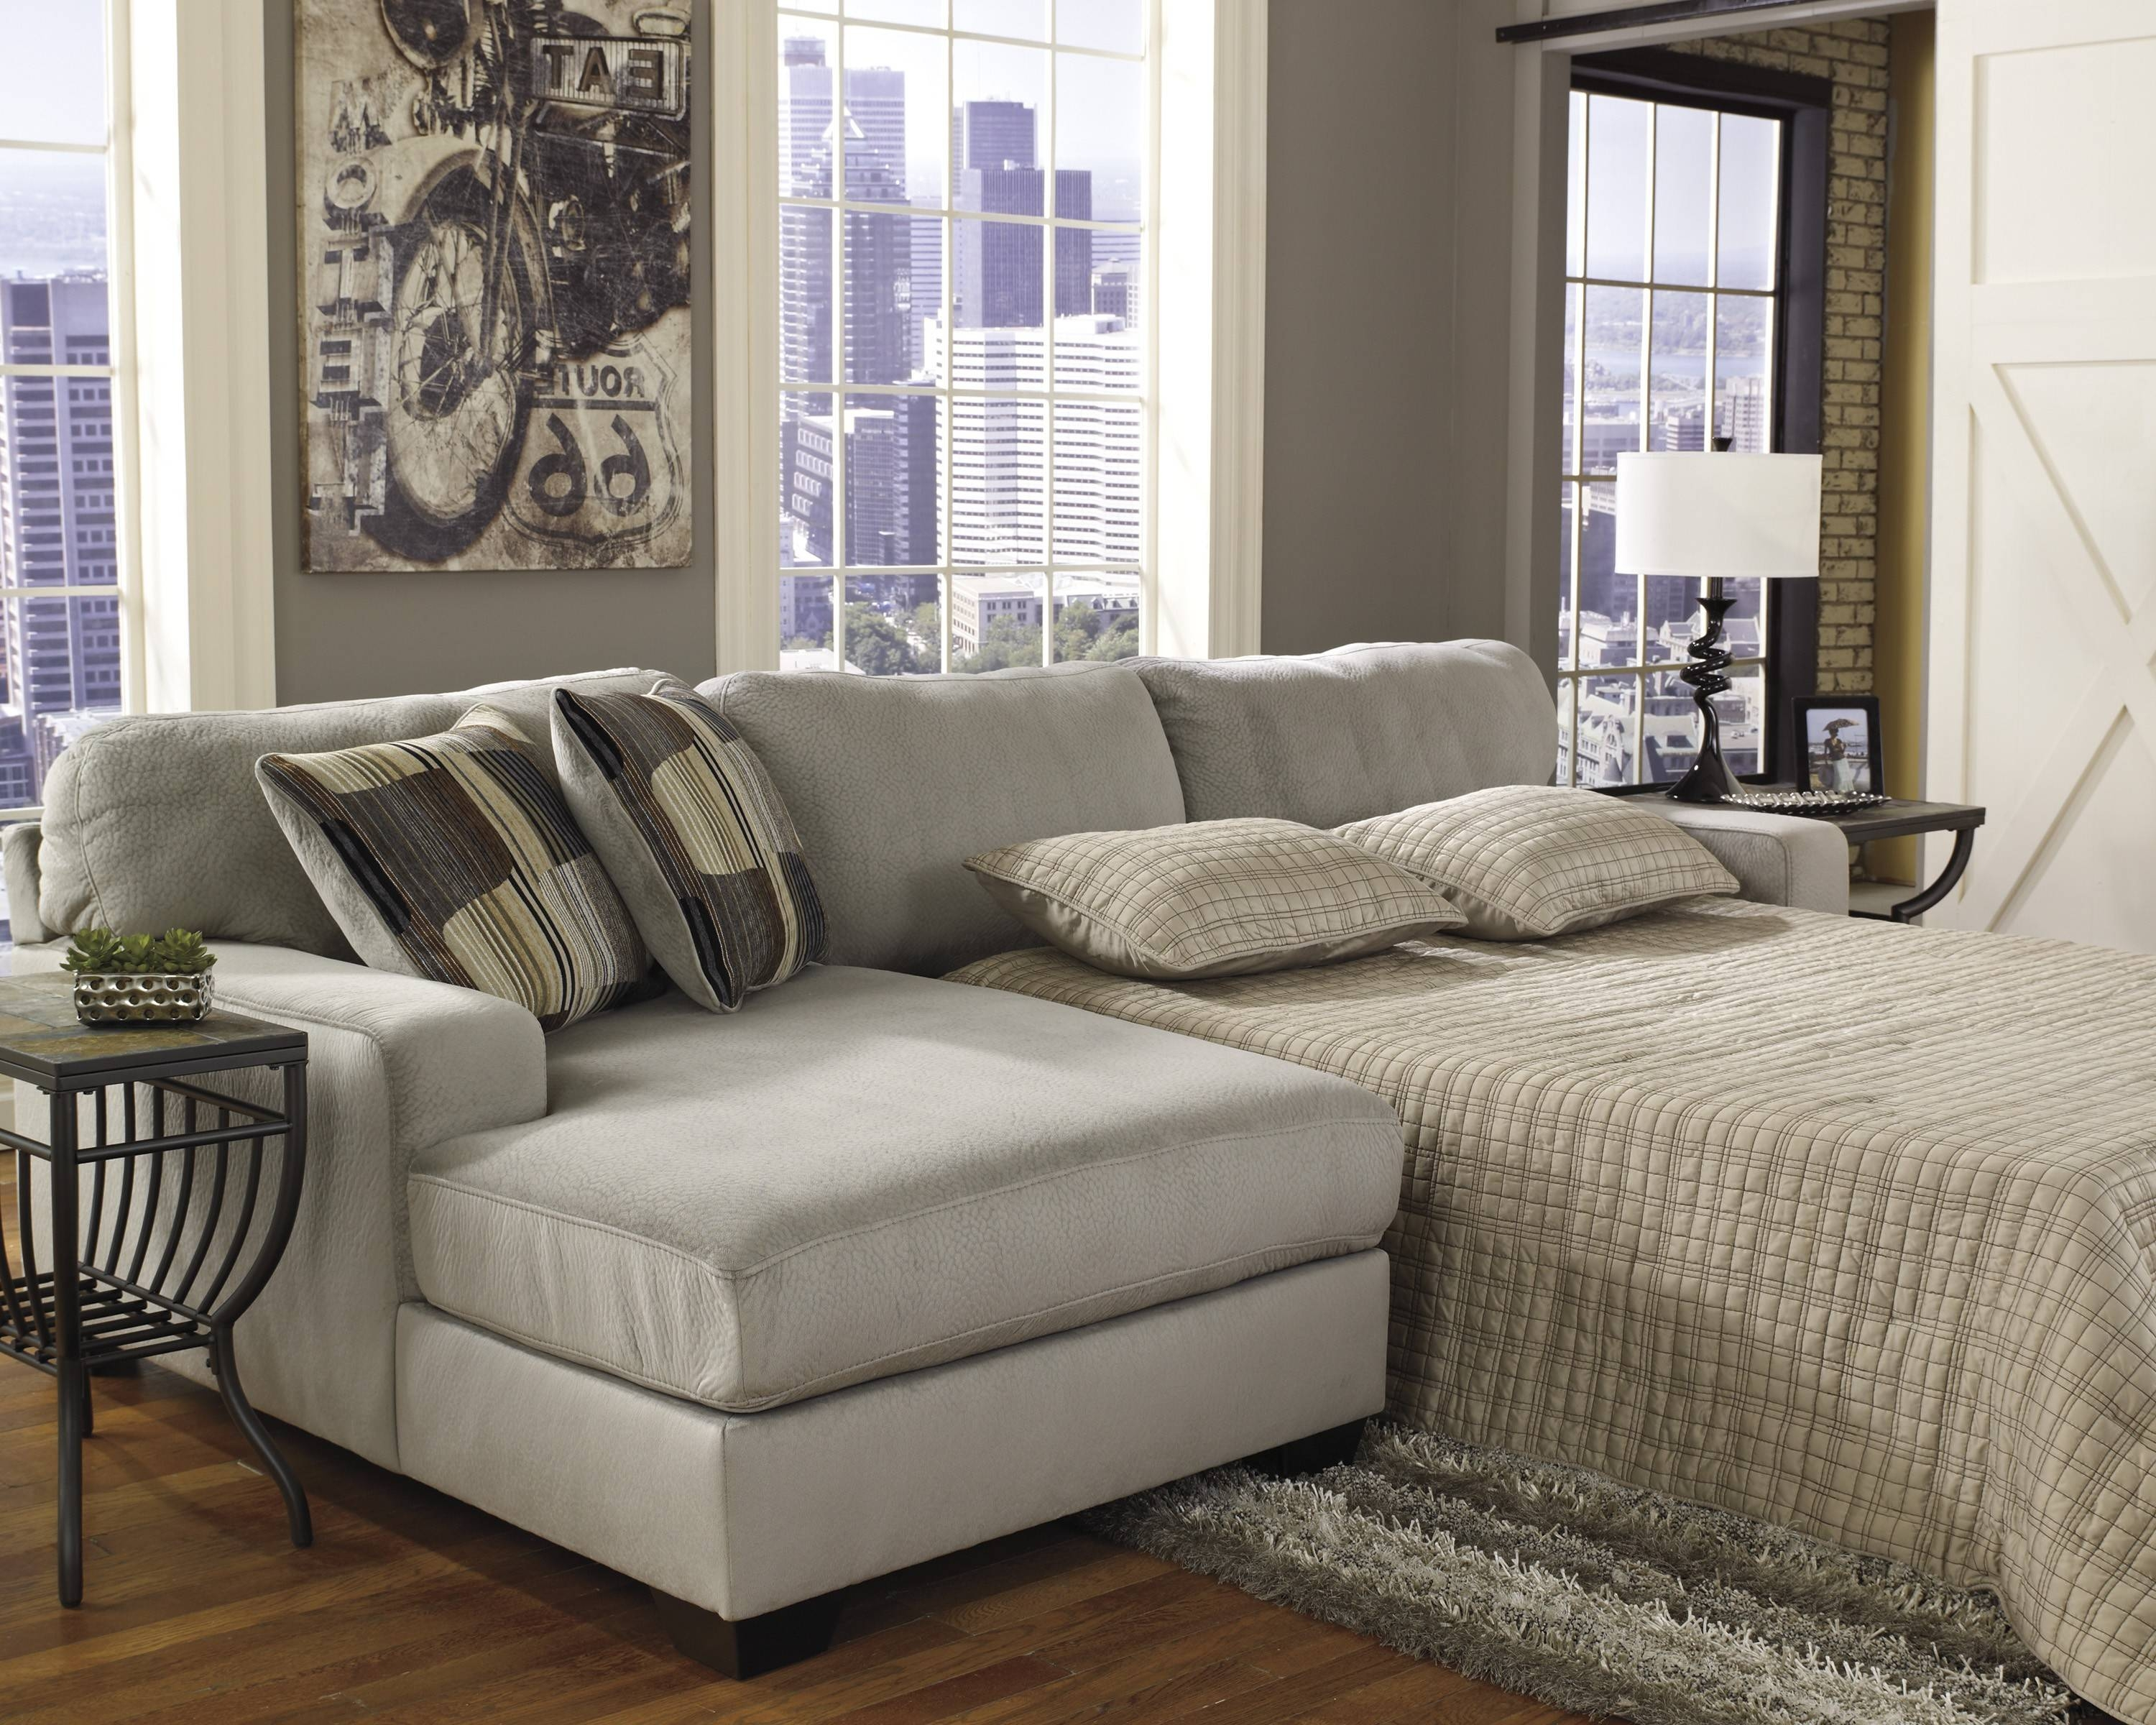 Bedroom: Exquisite Amour Sectional Couch With Pull Out Bed For throughout Sectional Sofas With Sleeper and Chaise (Image 3 of 30)